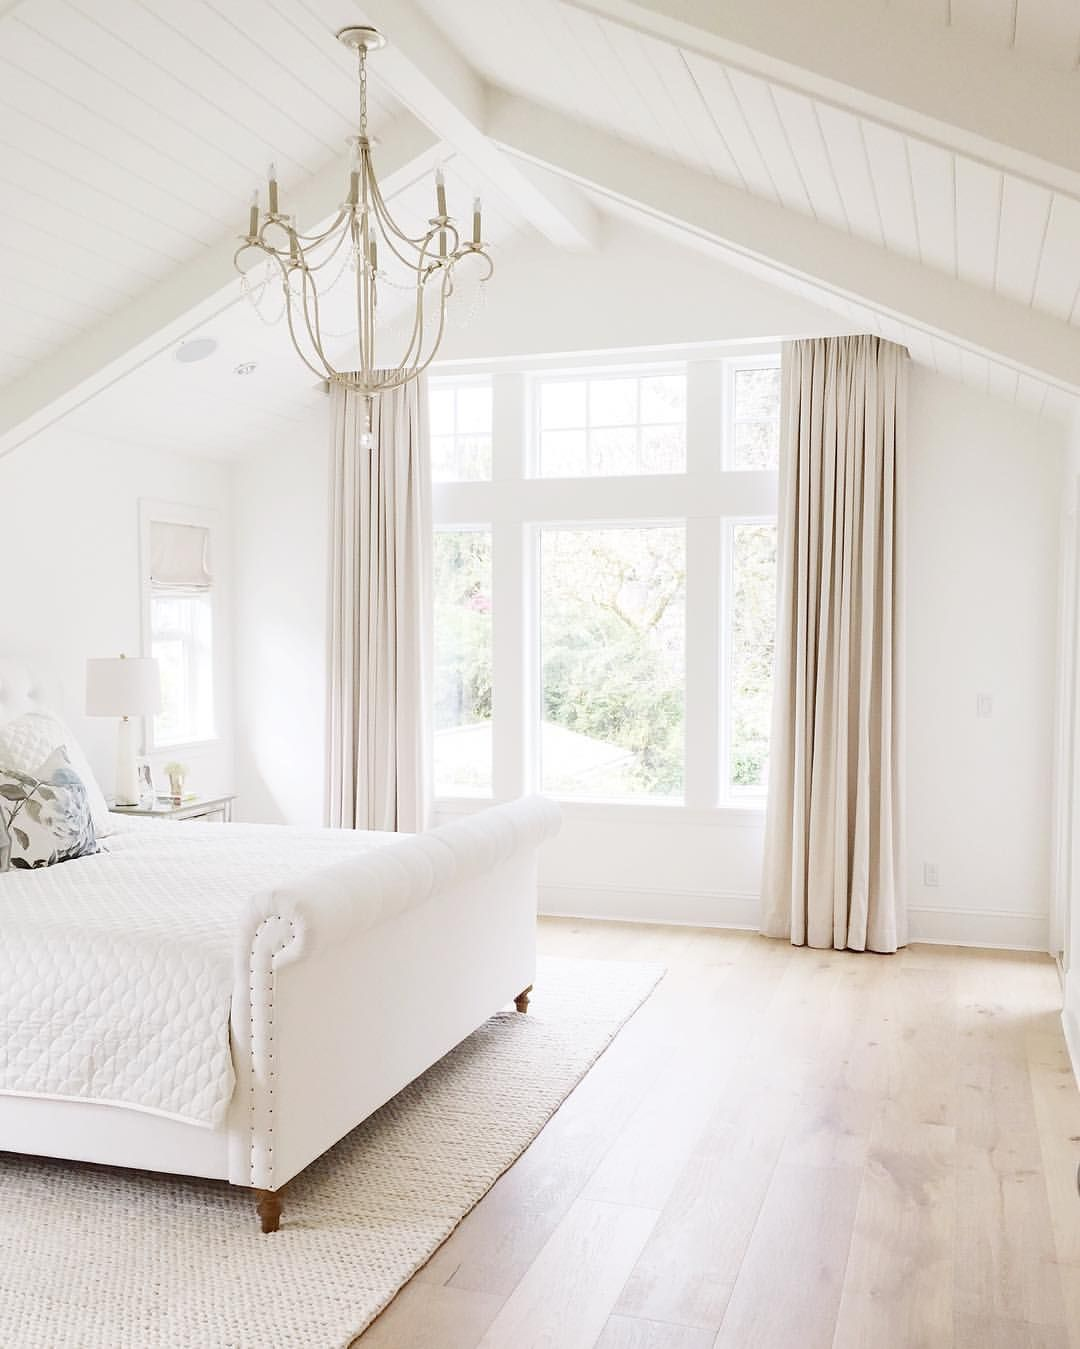 bedroom vaulted ceiling chandelier hardwood floors. Home decor and ...